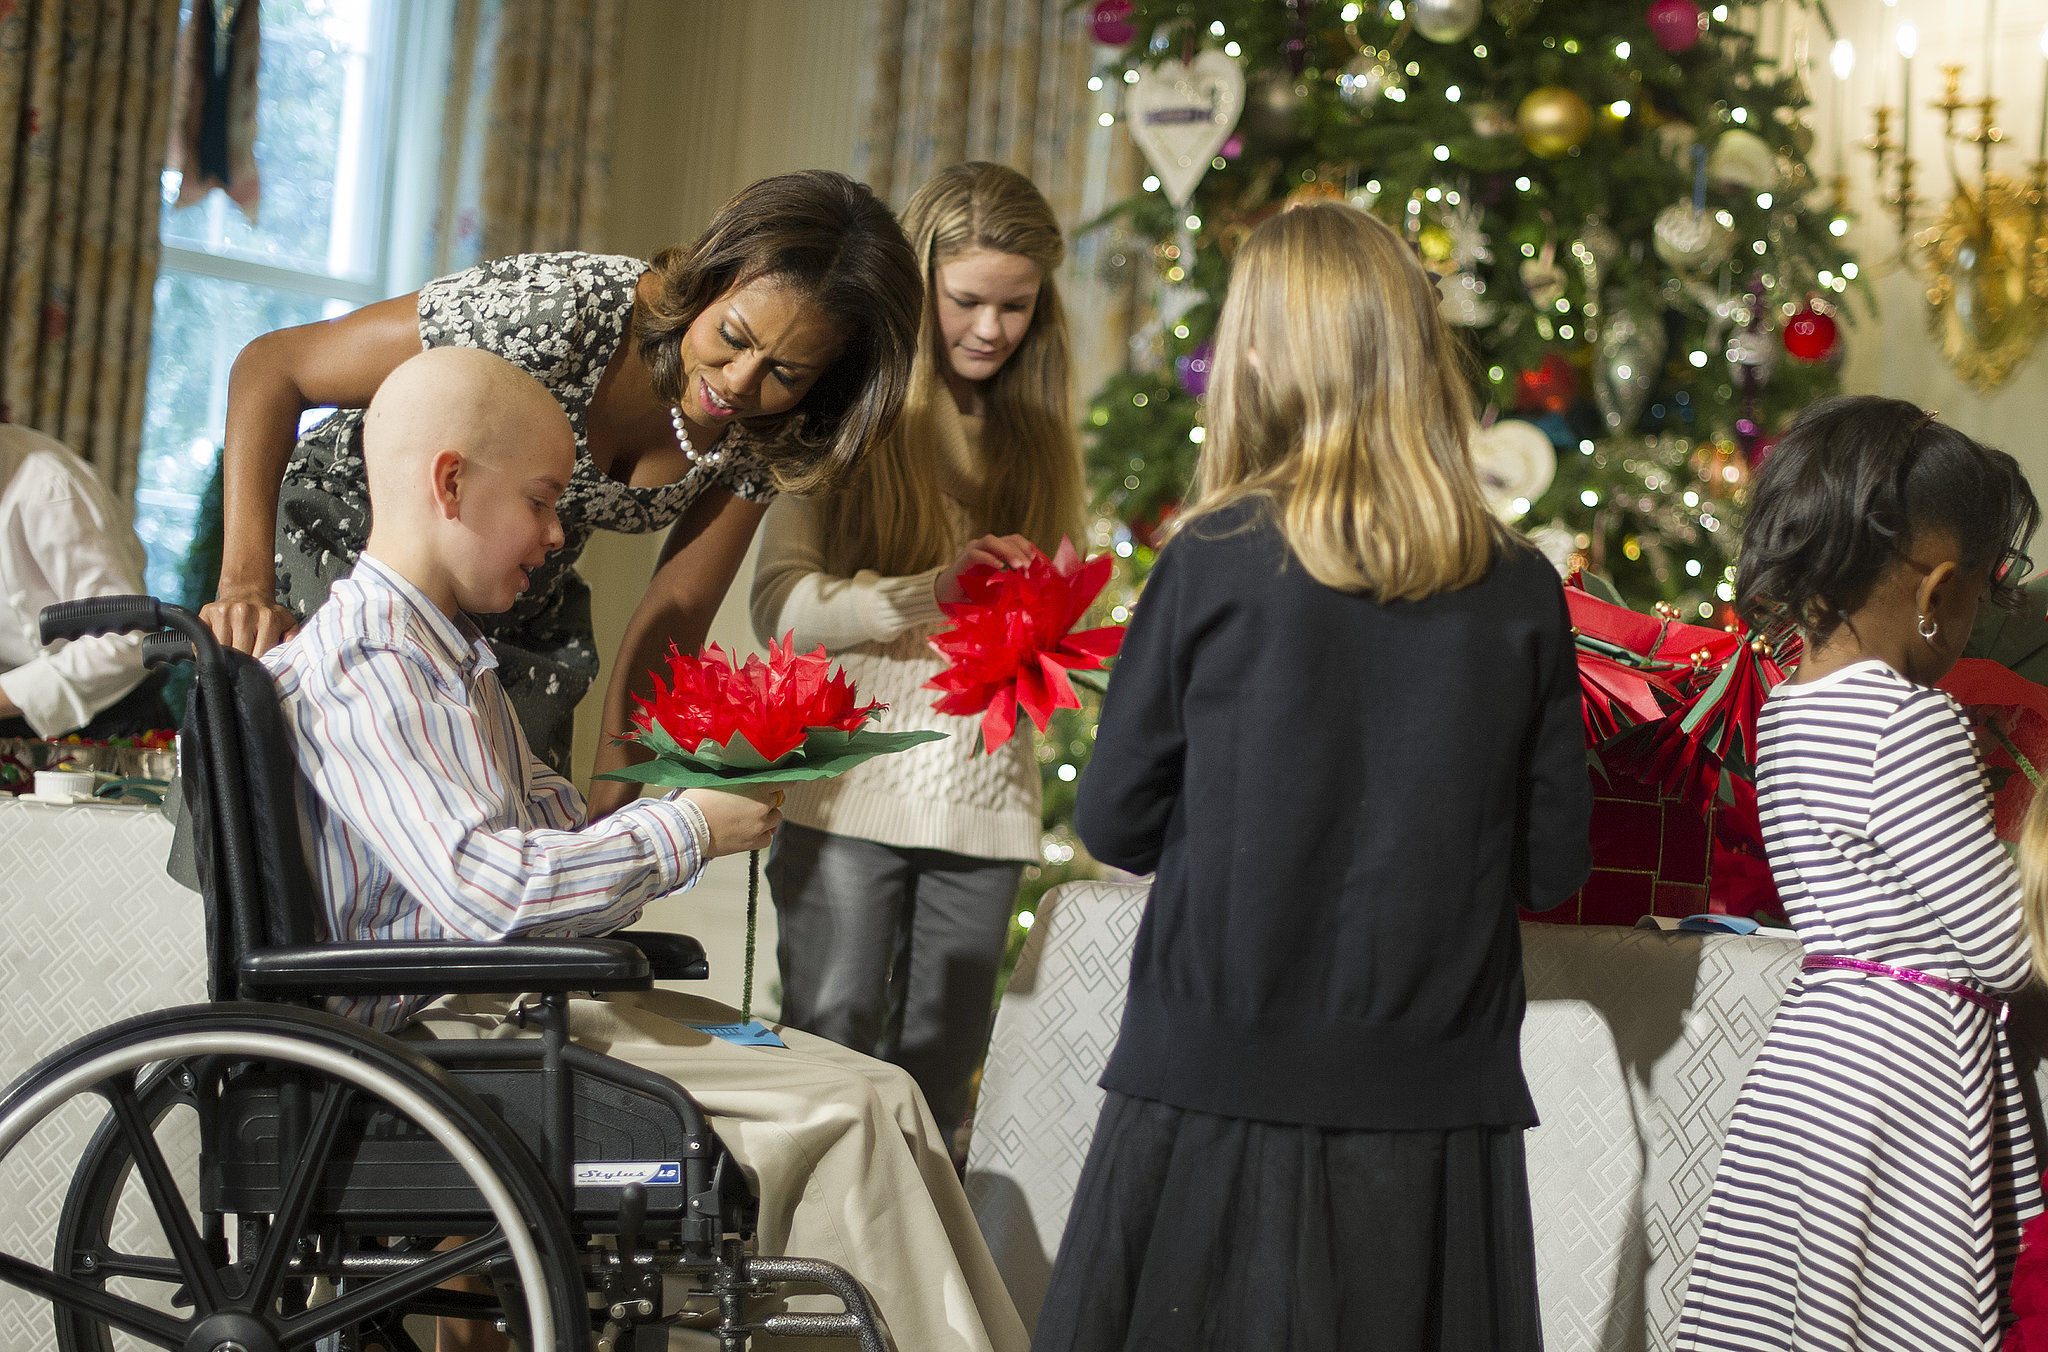 The First Lady Also Hosted a Sweet Day With Little Ones